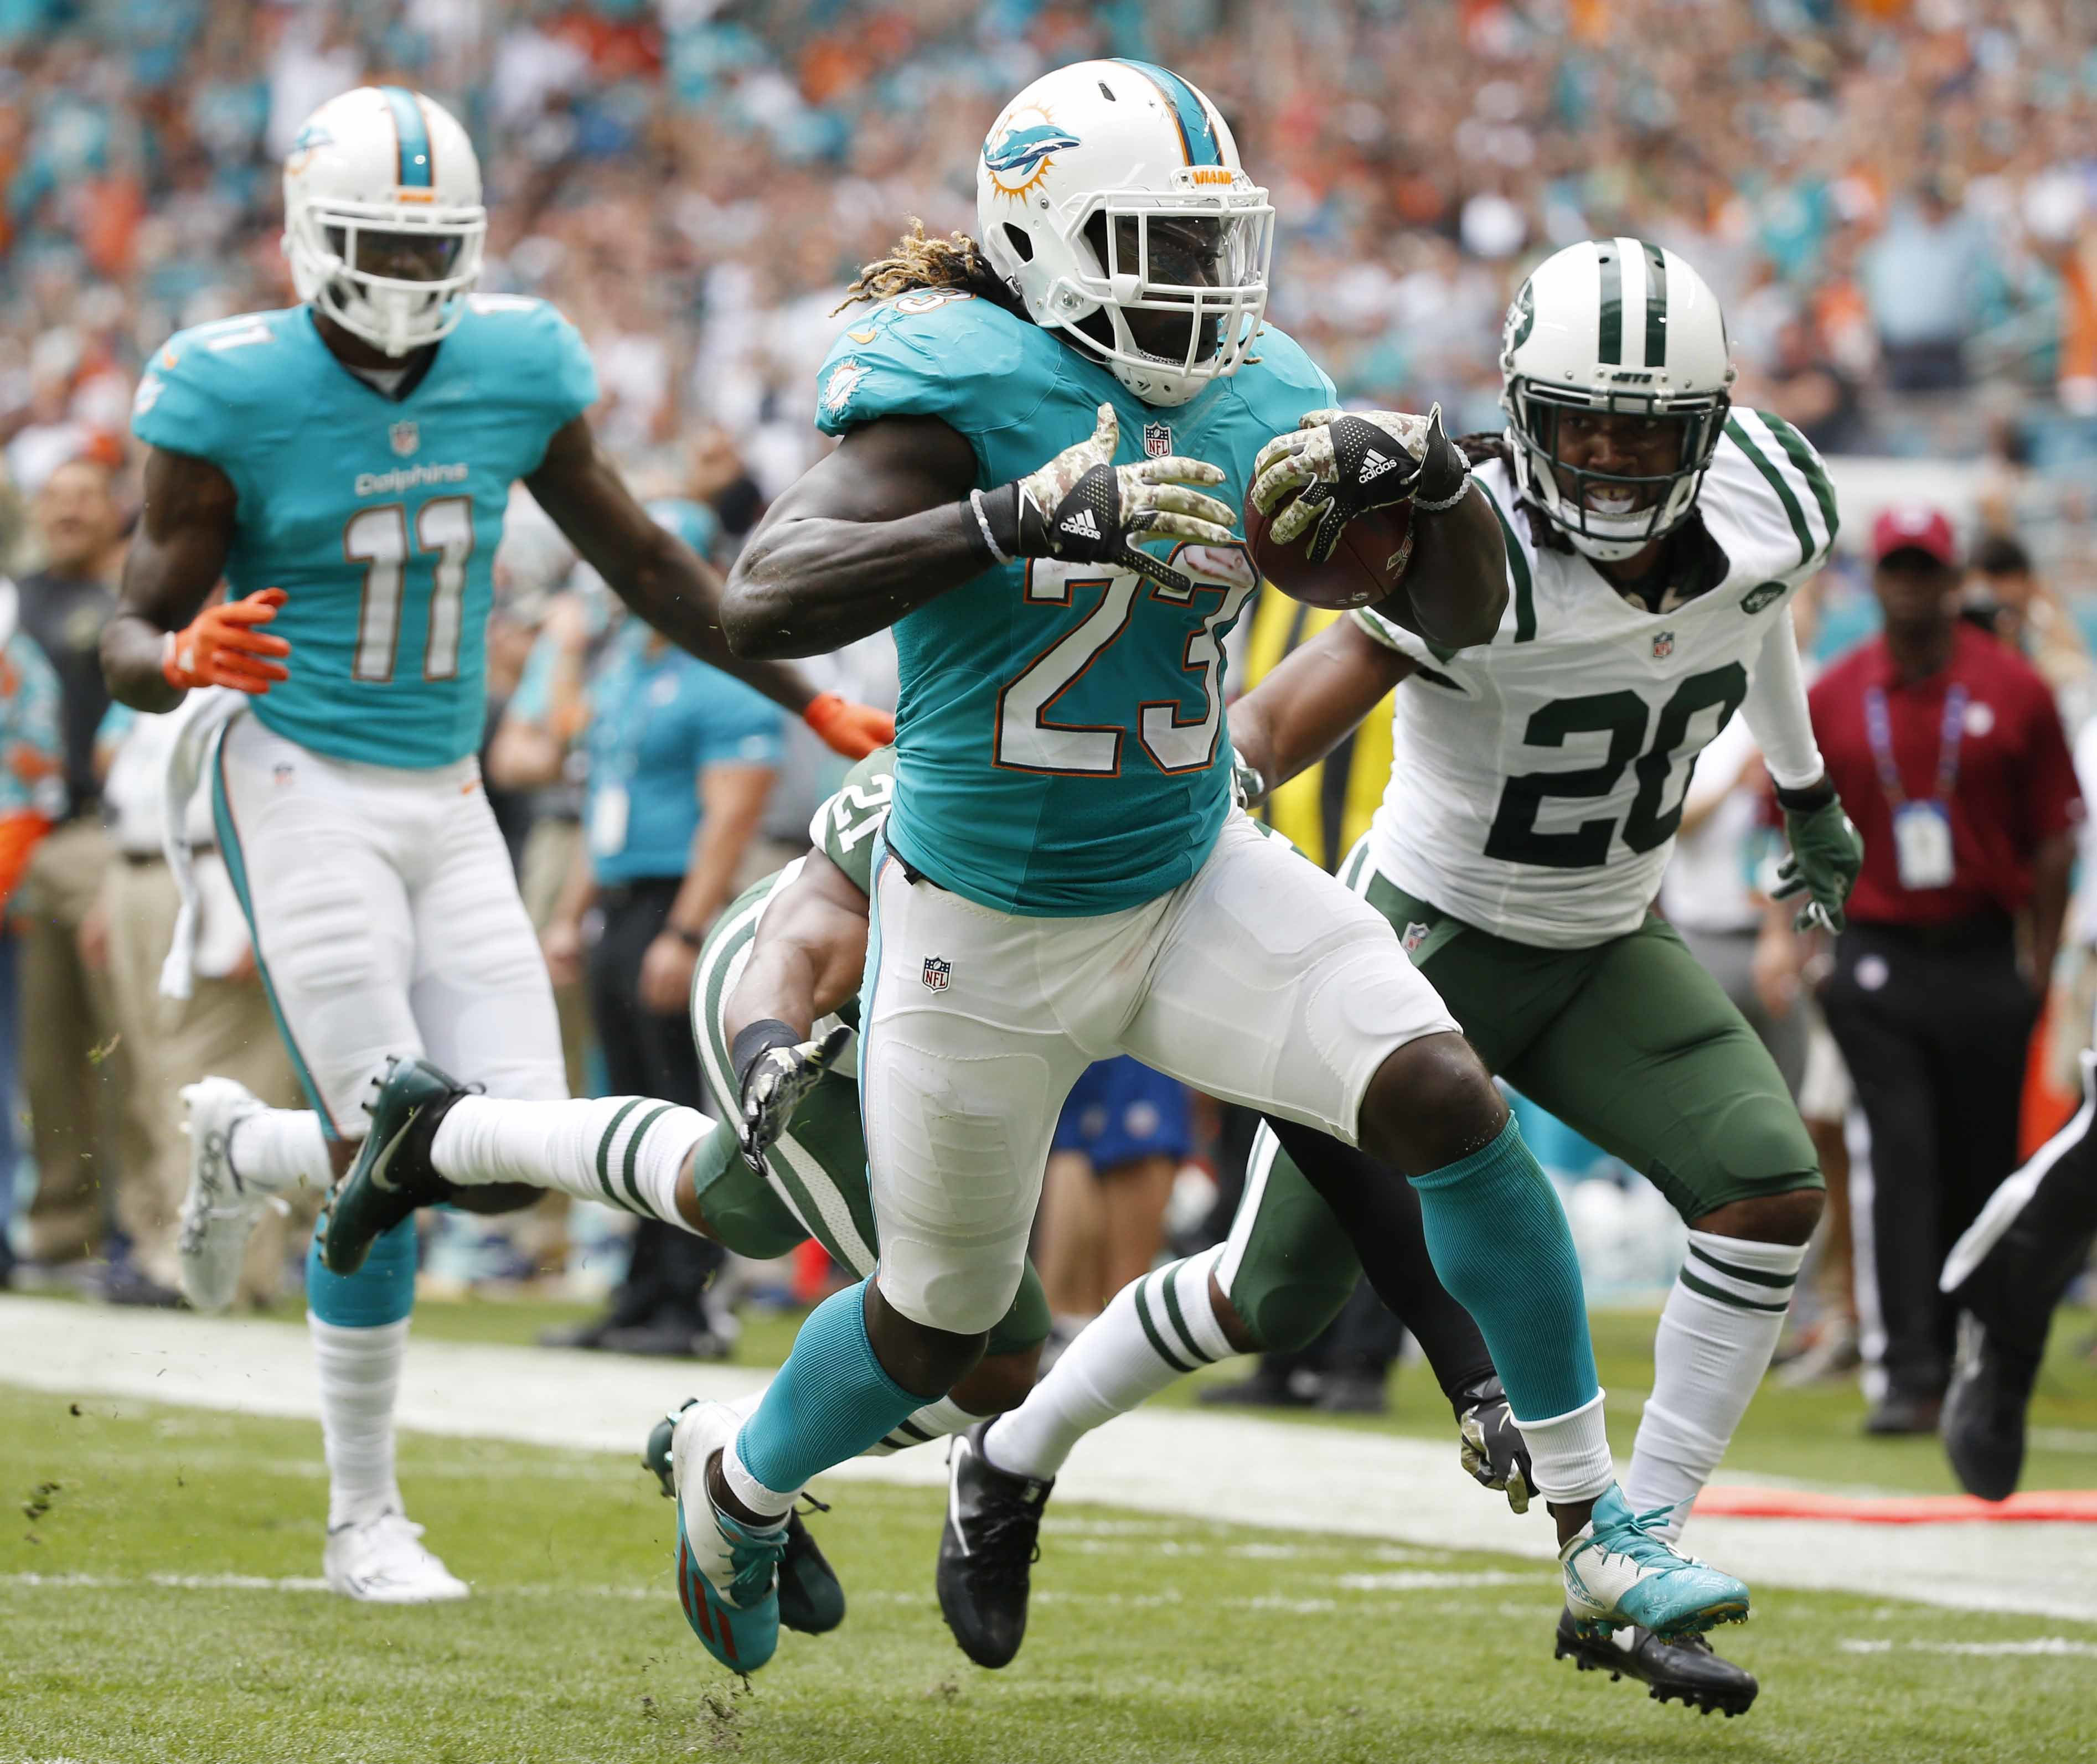 FILE - In a Sunday, Nov. 6, 2016 file photo, Miami Dolphins running back Jay Ajayi (23) runs for a touchdown ahead of New York Jets cornerback Marcus Williams (20), during the first half of an NFL football game, in Miami Gardens, Fla.  No team is a bigger